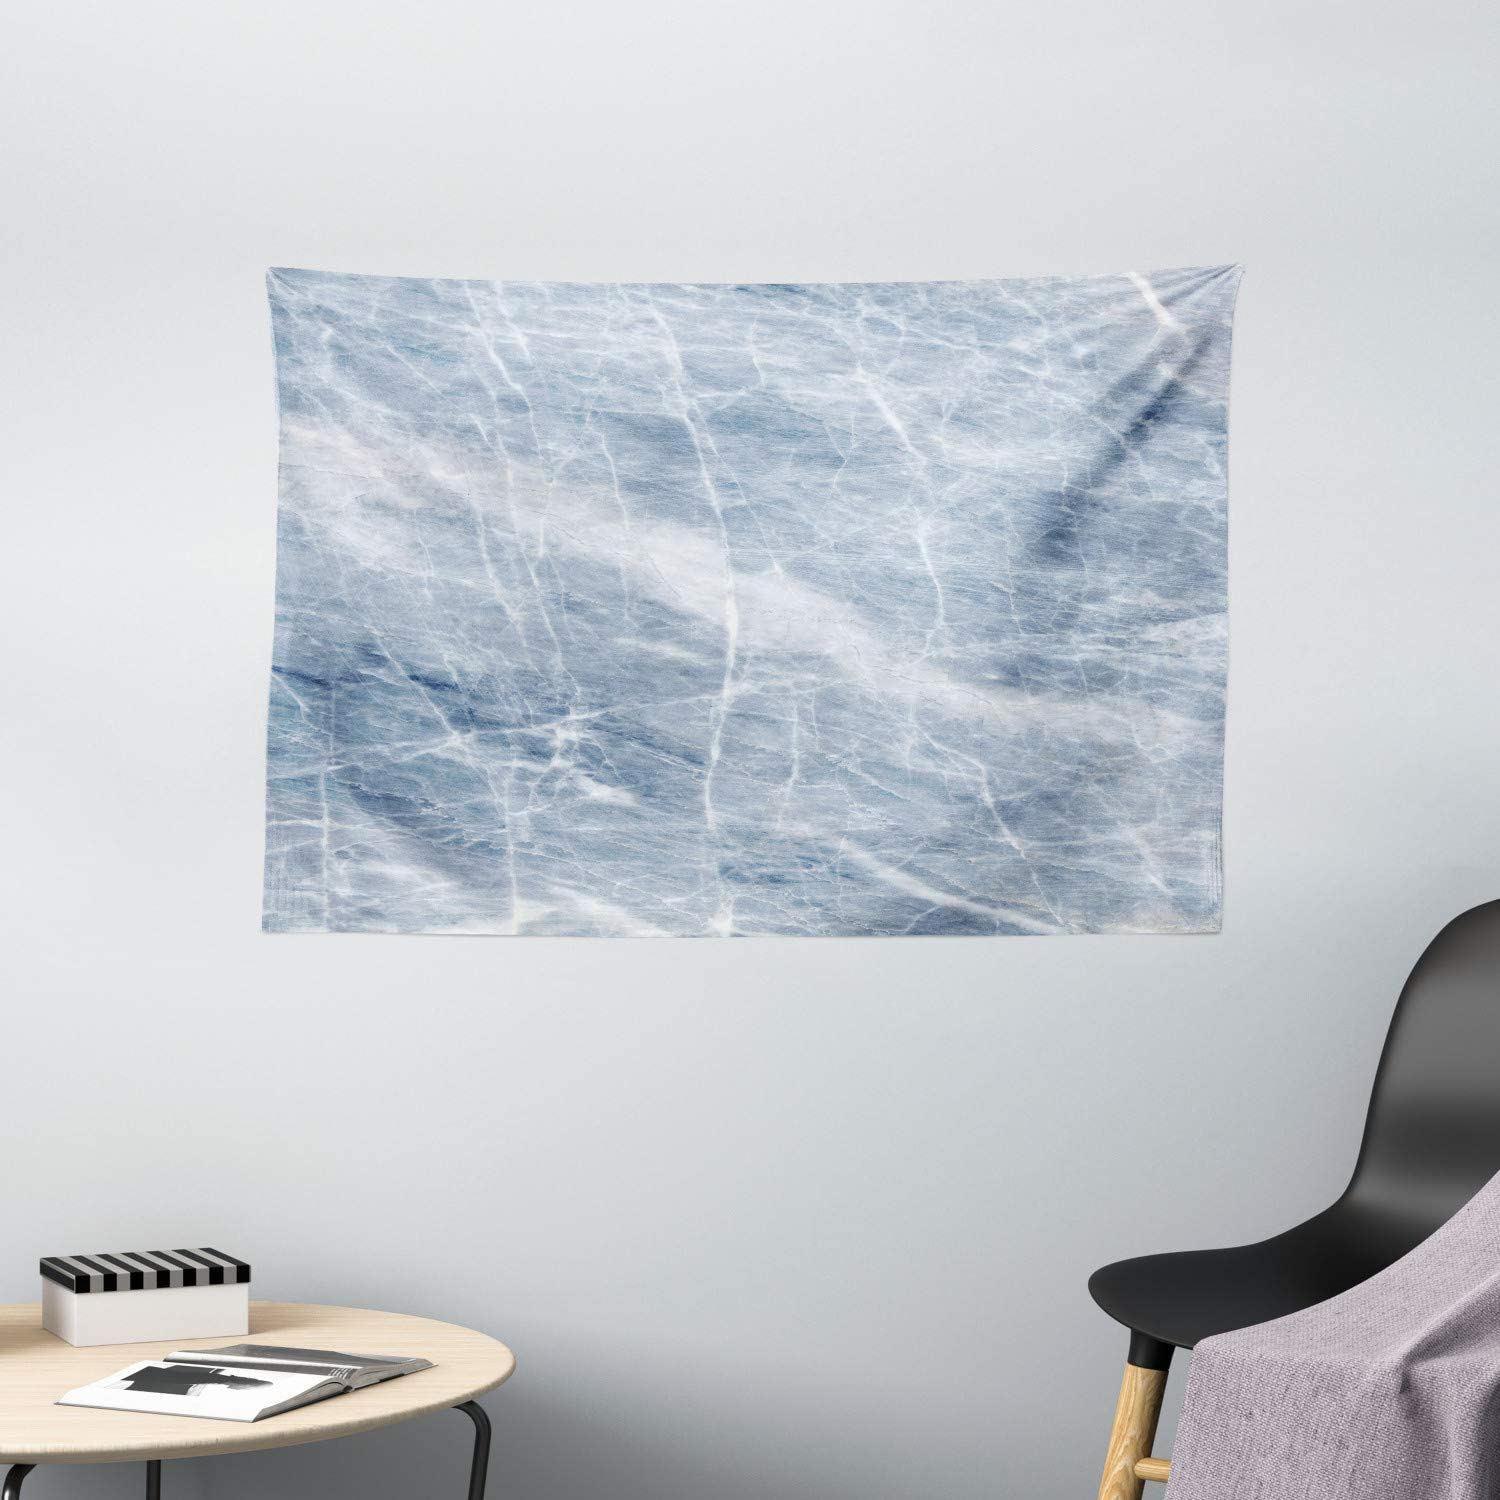 Amazon Com Ambesonne Marble Tapestry Light Blue Marble Pattern With White Cracks On Its Surface Geography Stone Wall Hanging For Bedroom Living Room Dorm 60 W X 40 L Inches Light Blue White